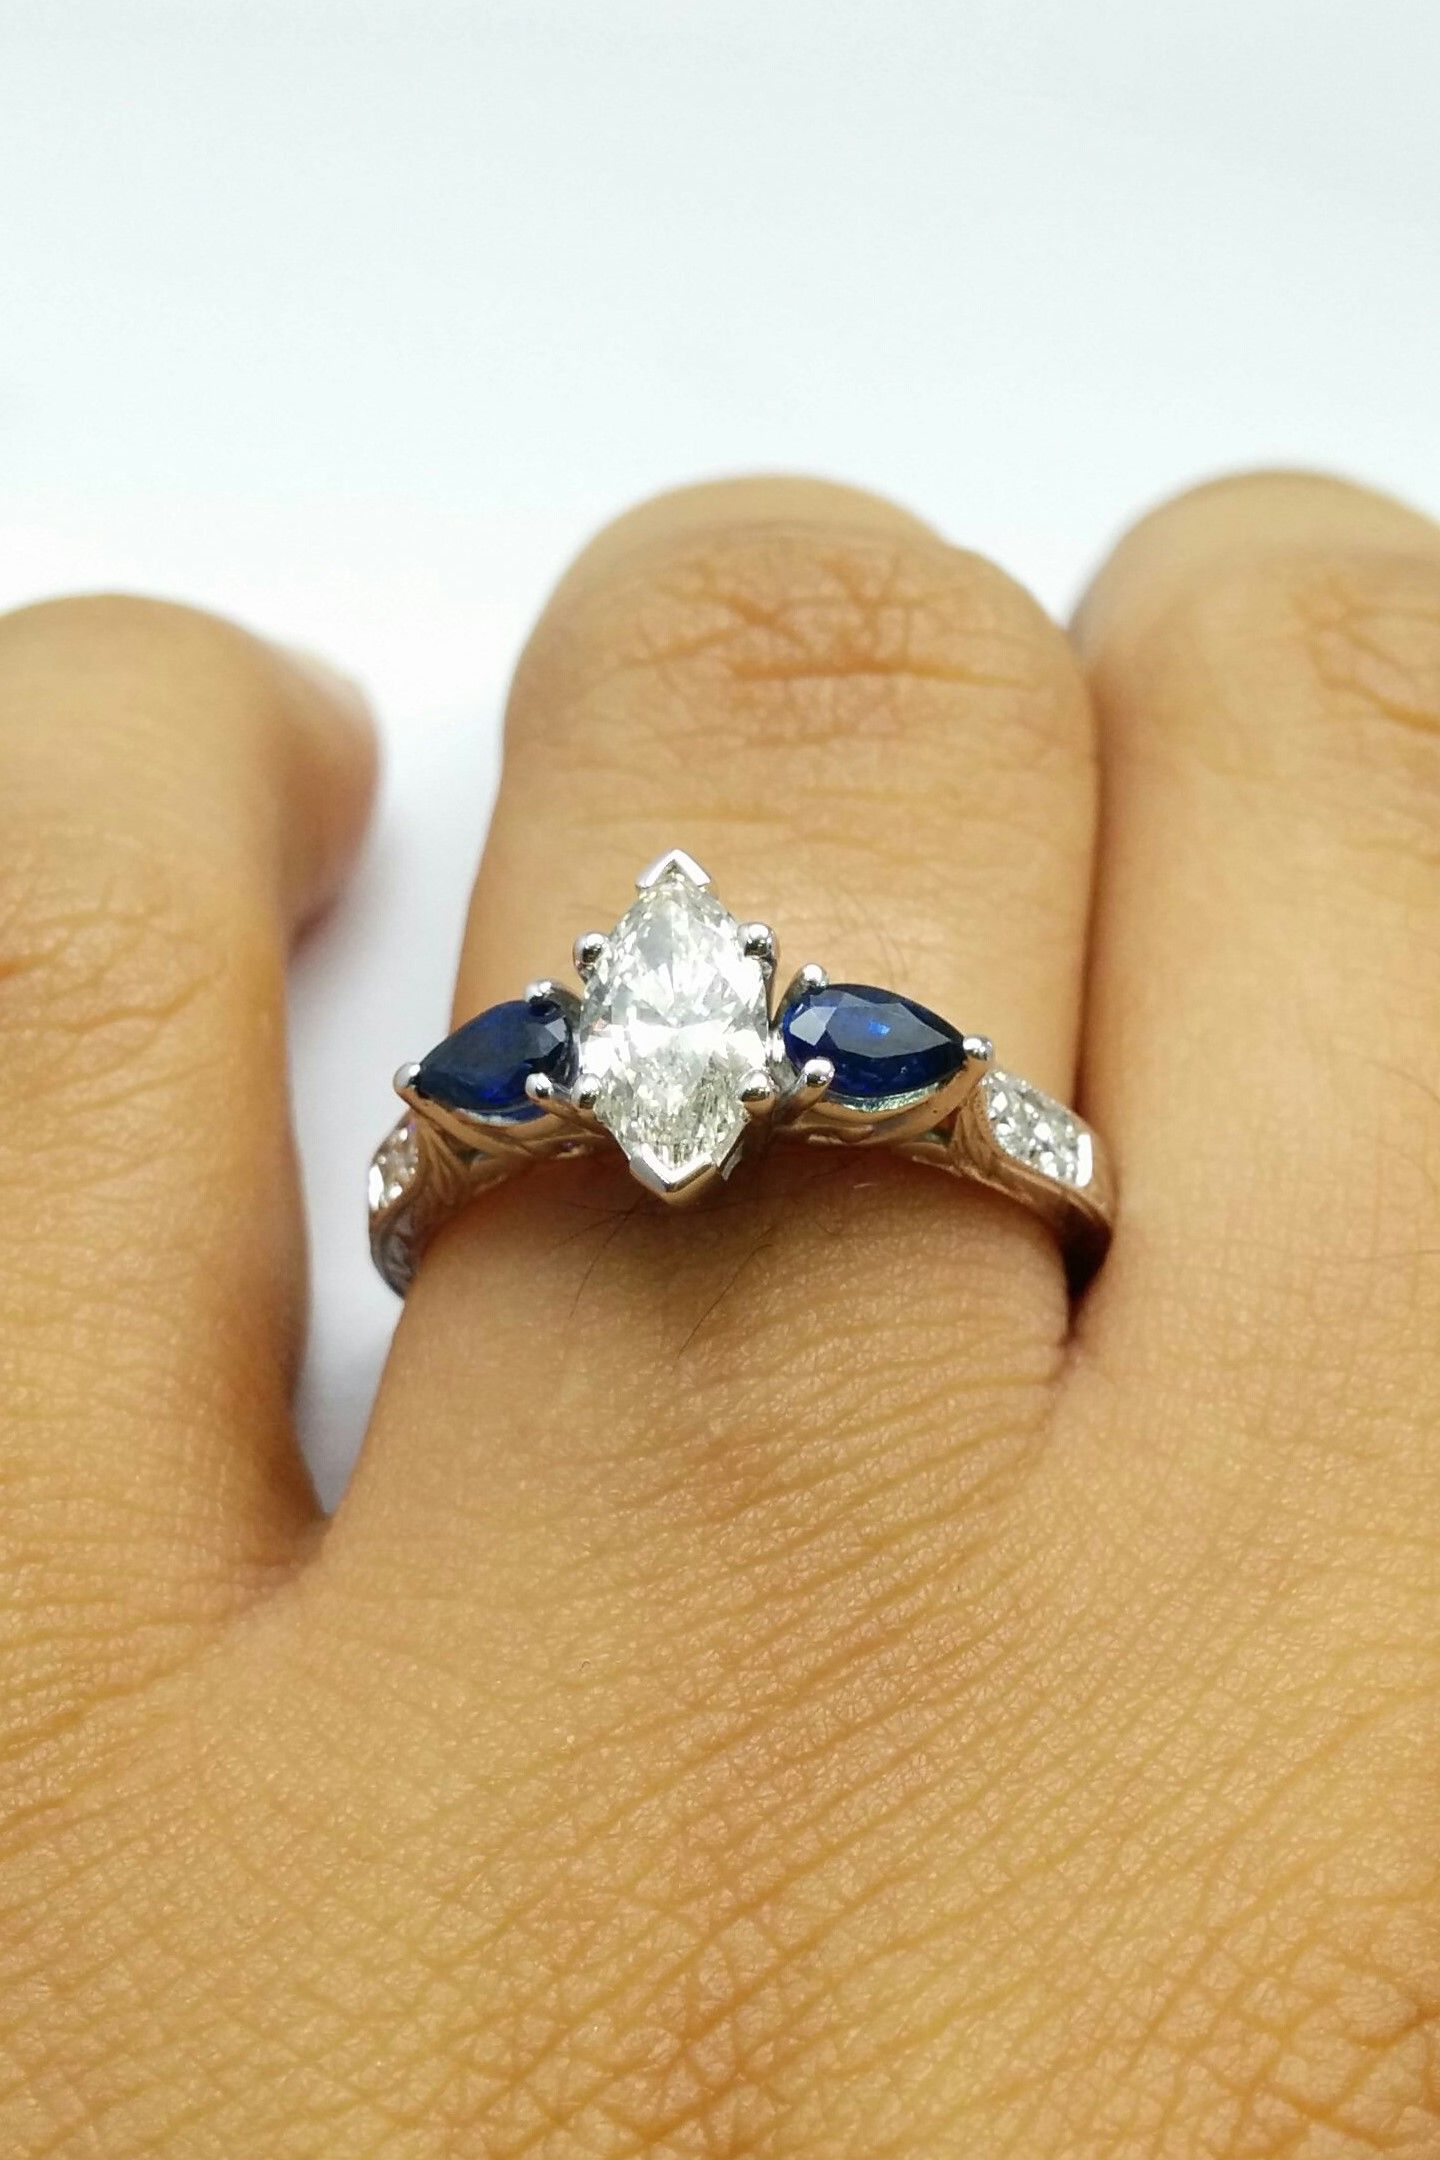 mar ring michael m rings solitaire engagement since jewels del old tashne gold white school by